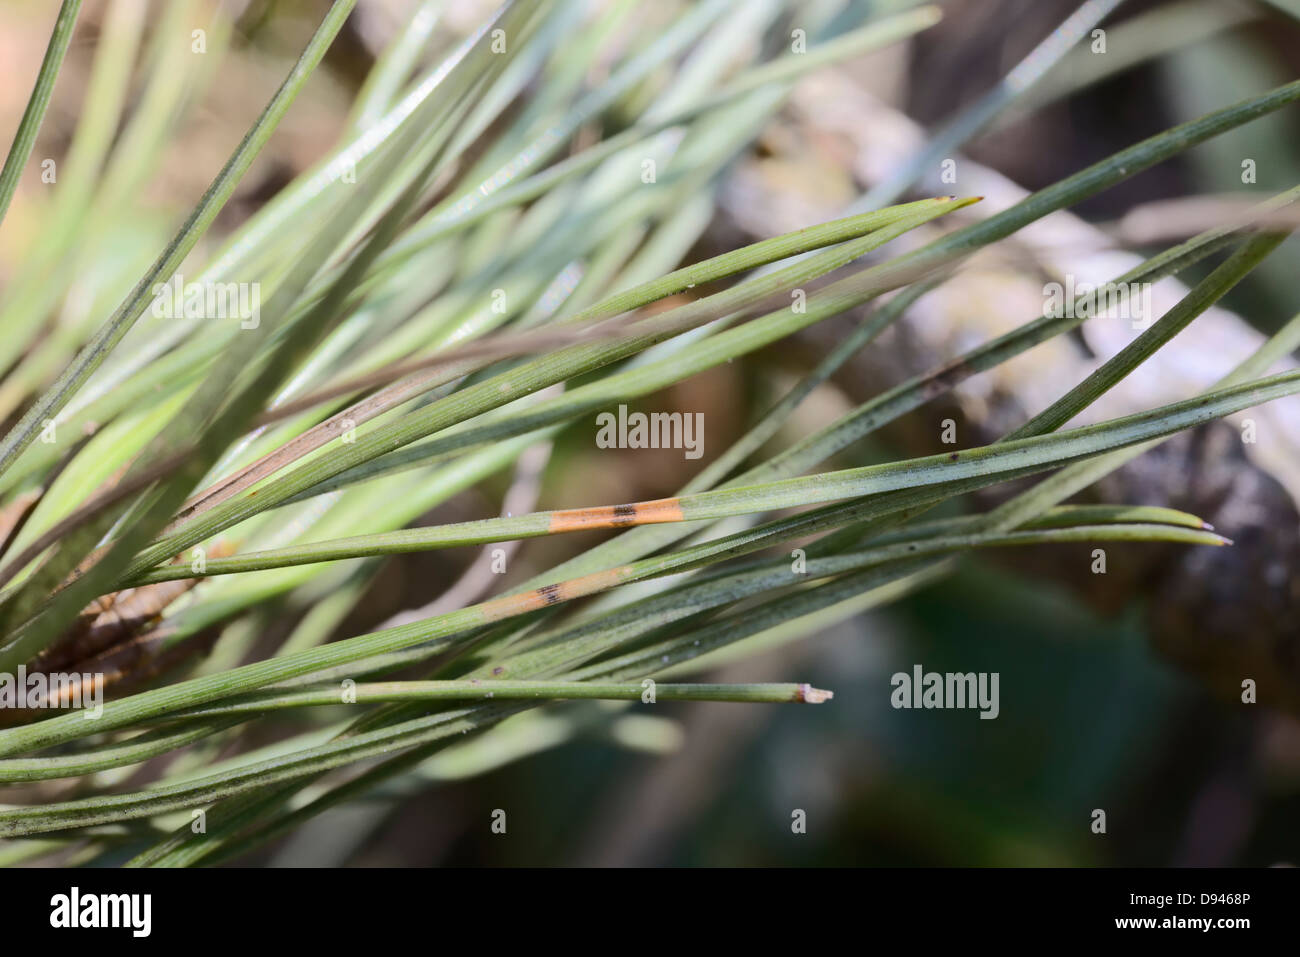 Red band on pine needles, diagnostic signs of Dothistroma Needle Blight or Red Band Needle Blight, Wales, UK. - Stock Image